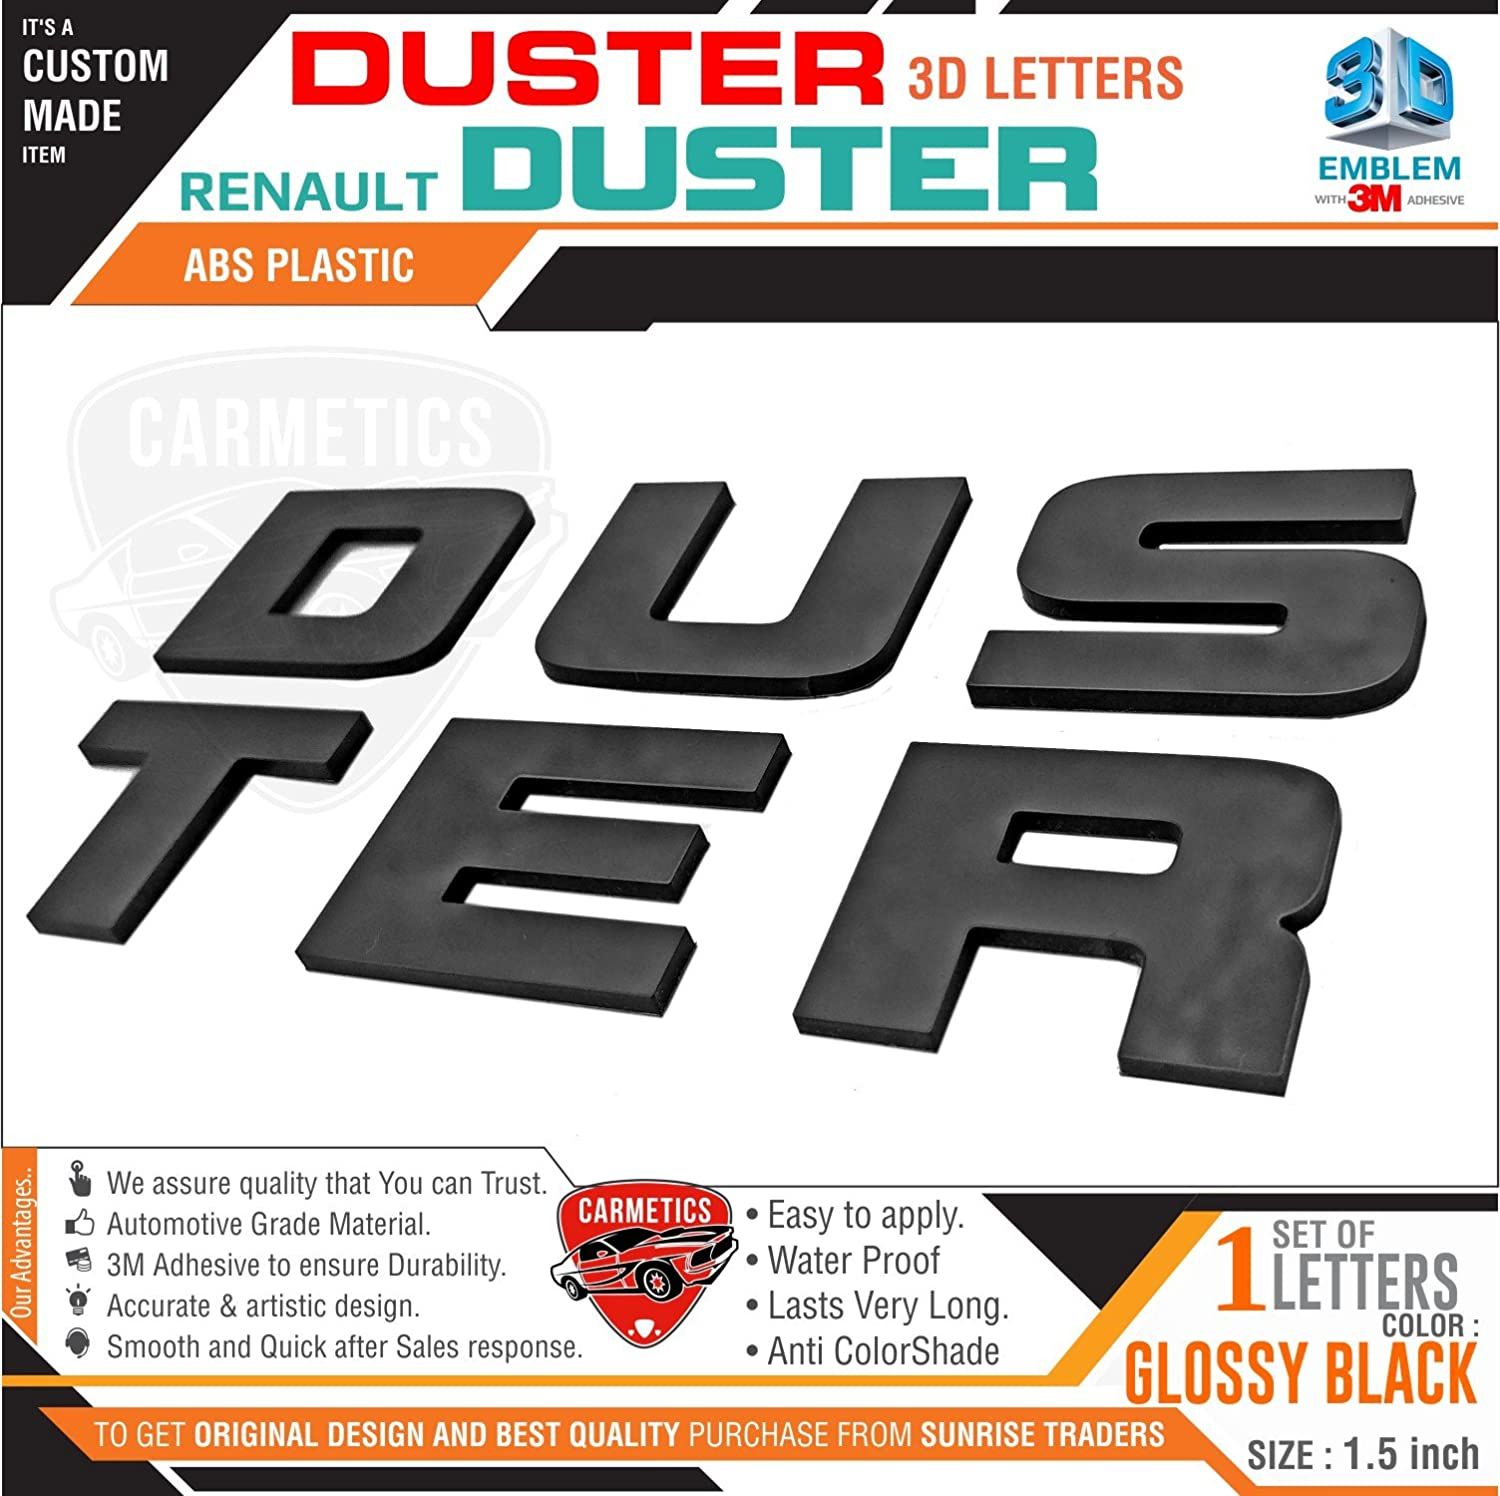 Carmetics 3d car stickers accessories mirror finish duster 3d letters for renault duster car free gang of dusters sticker black amazon in car